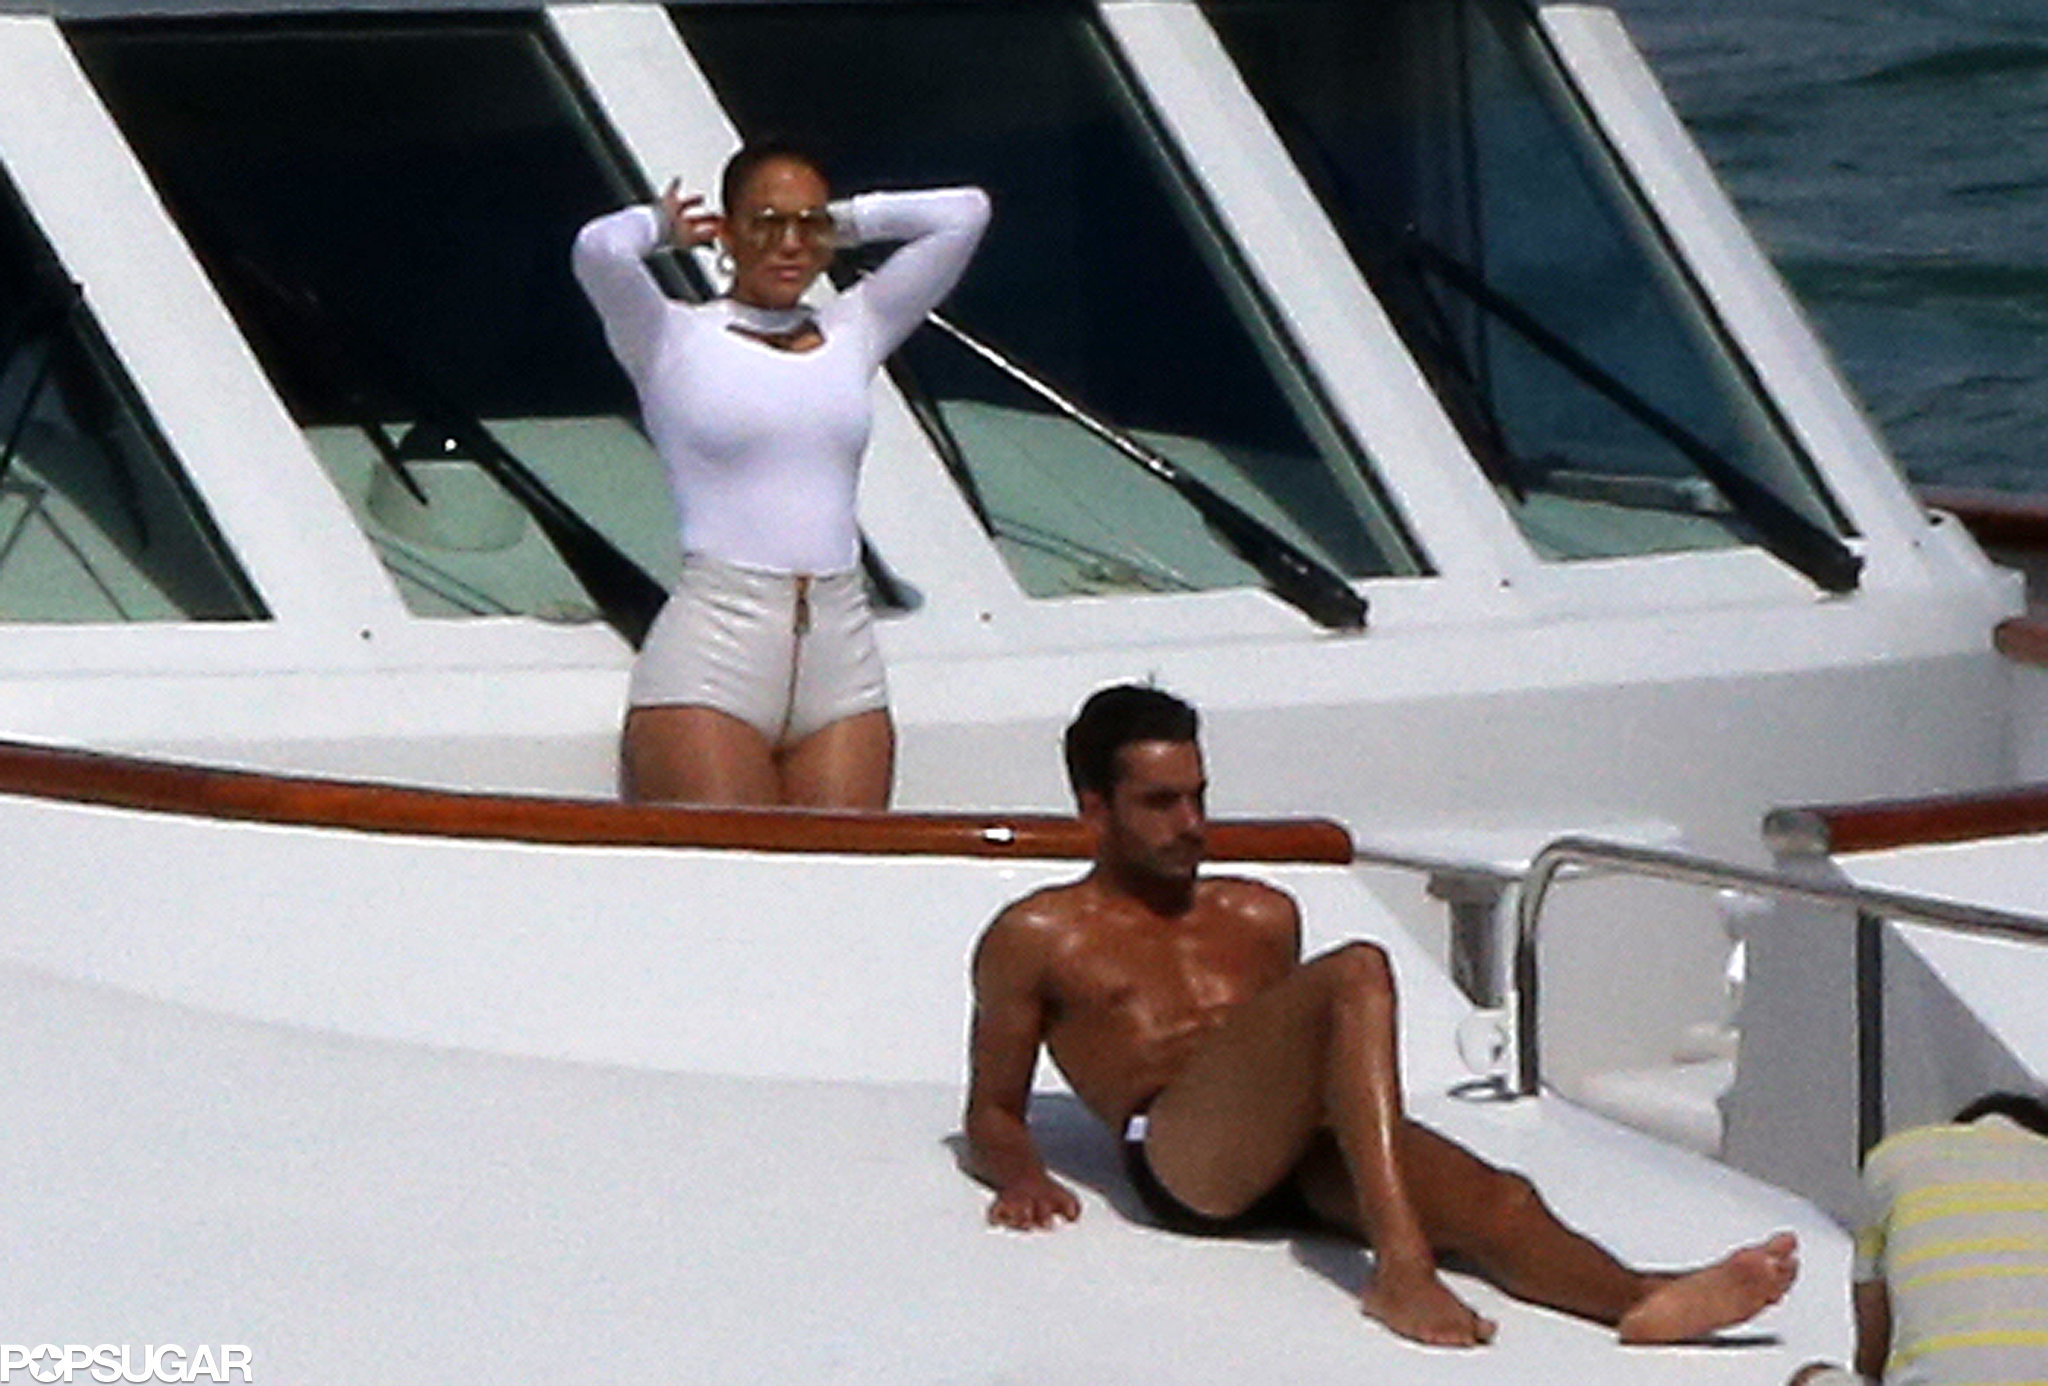 This Is Just Another Day at the Office For Jennifer Lopez